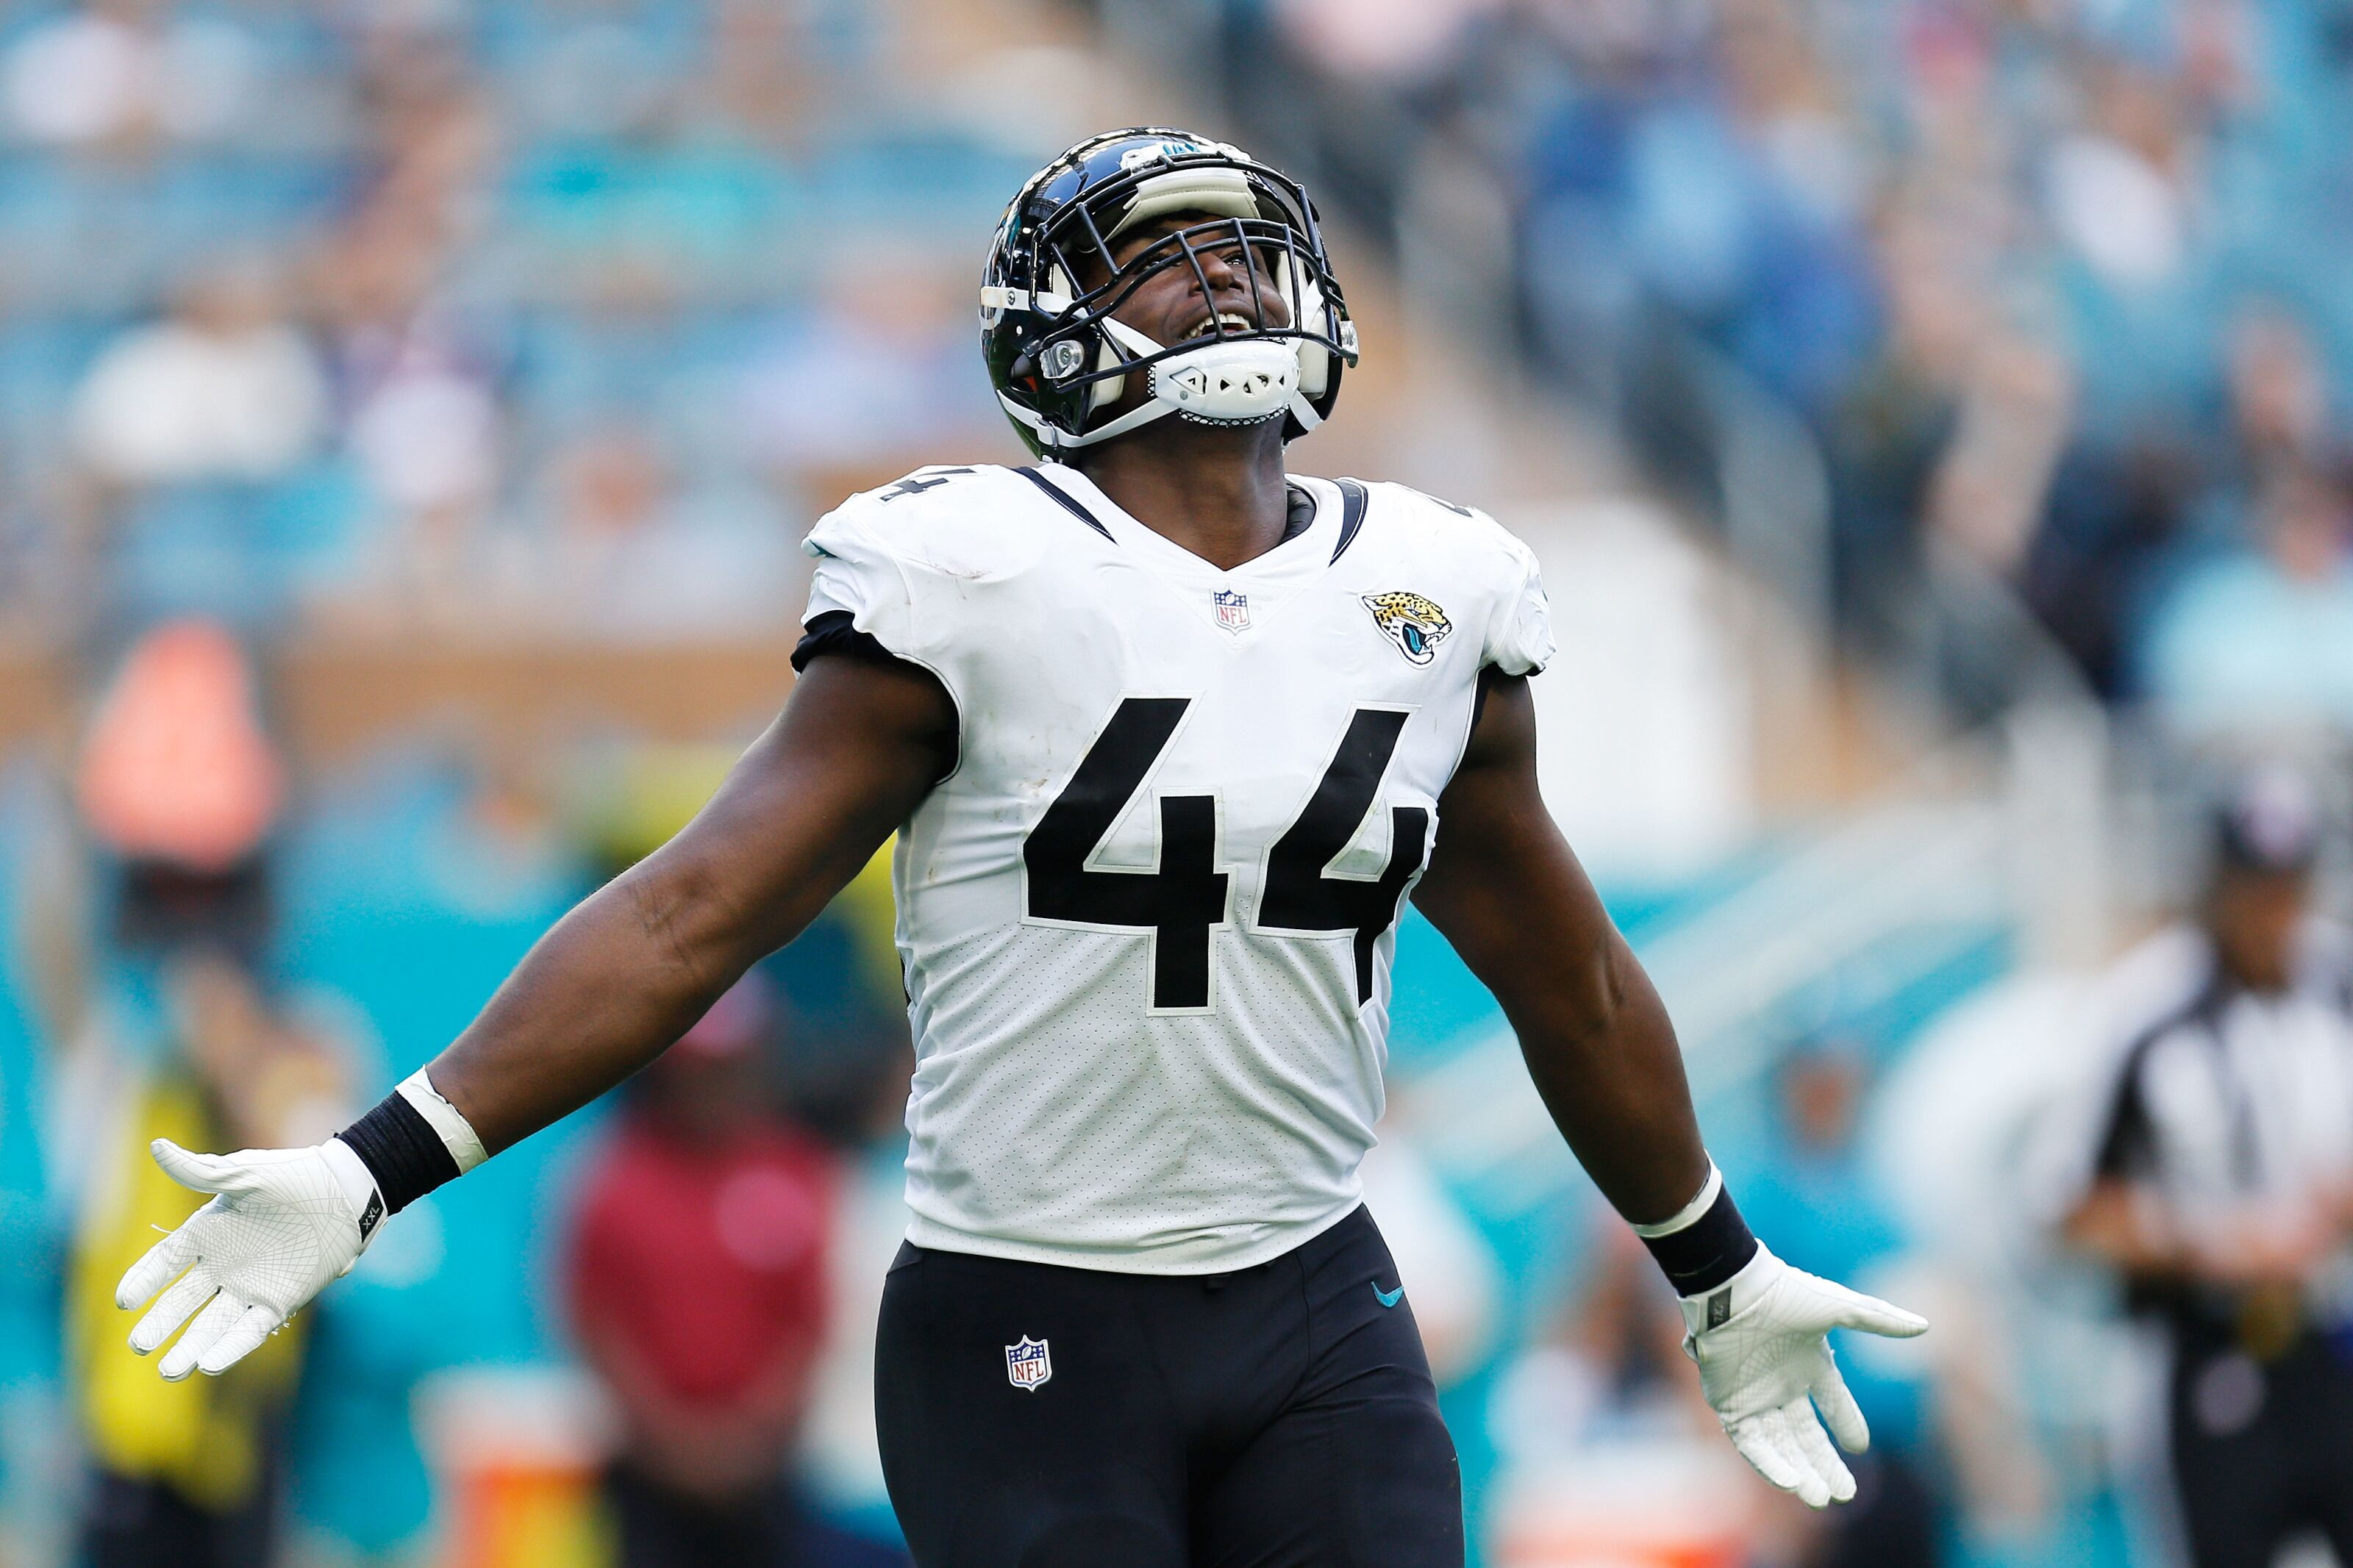 Jaguars: Myles Jack is deserving of a new contract as well